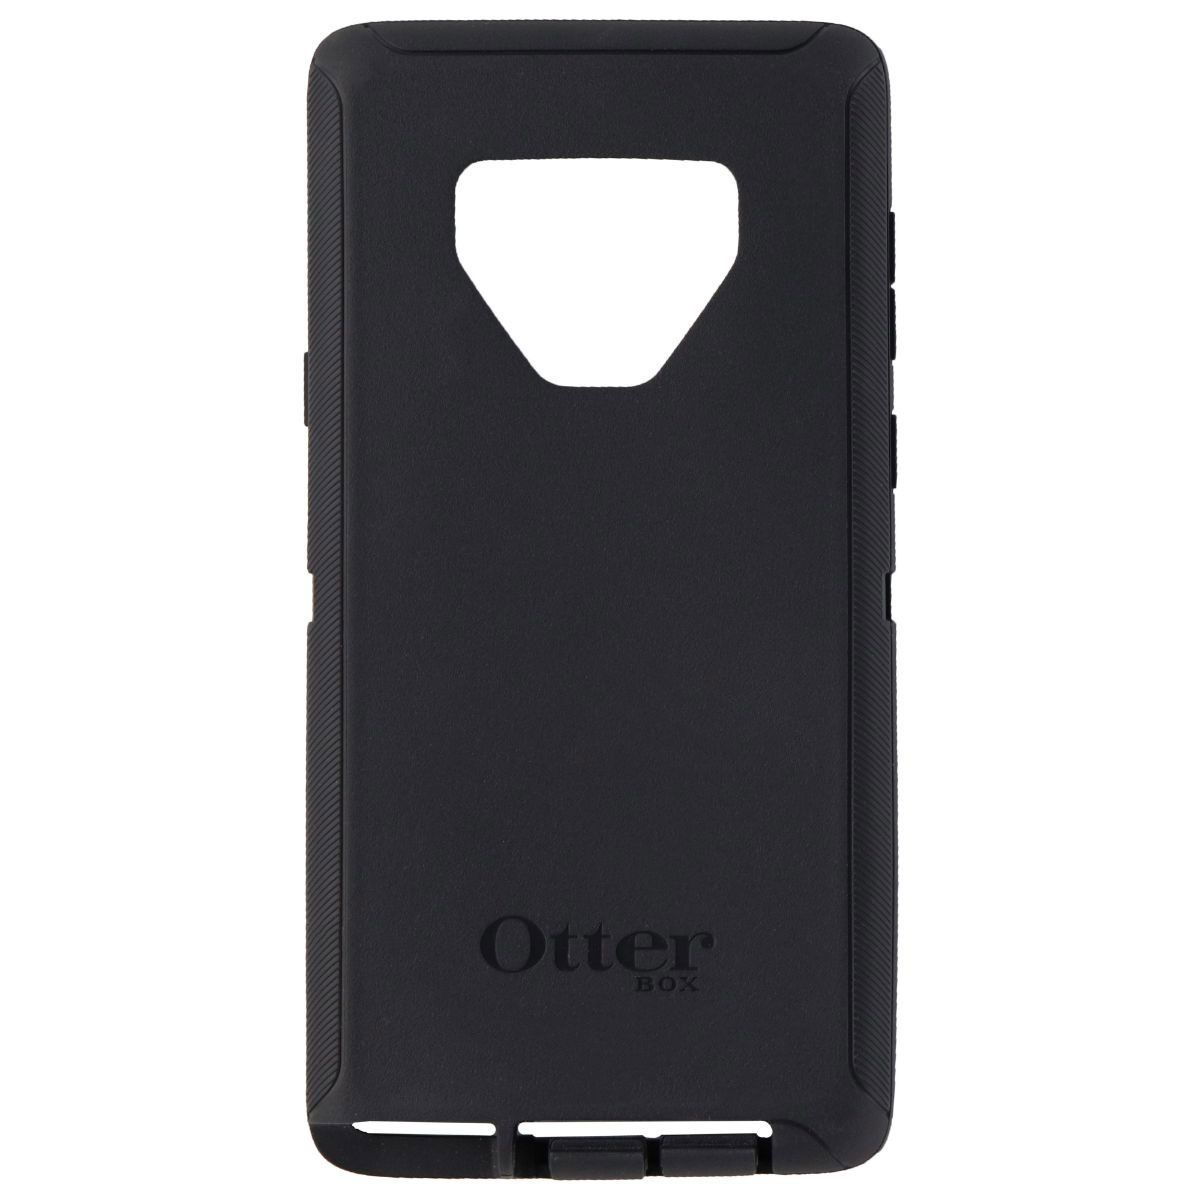 OtterBox Exterior Slip Cover for the Samsung Galaxy Note 9 Defender Case - Black